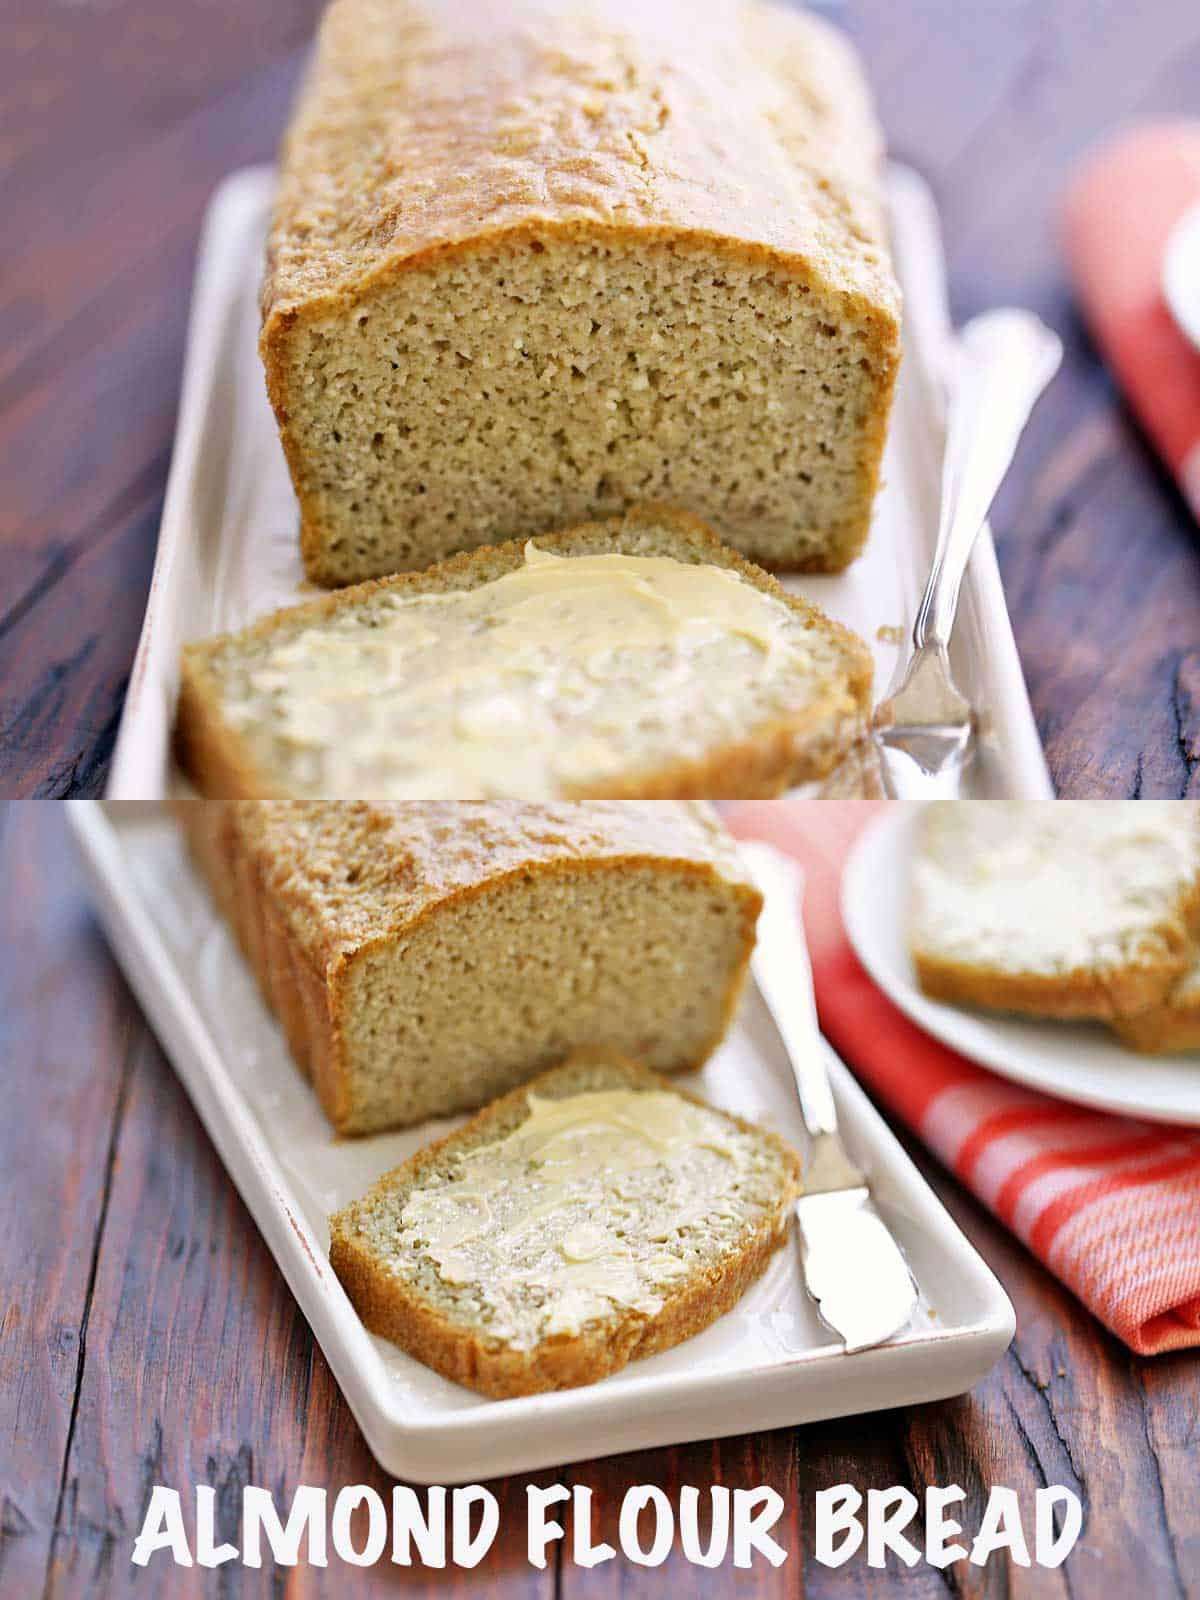 Almond flour bread topped with butter